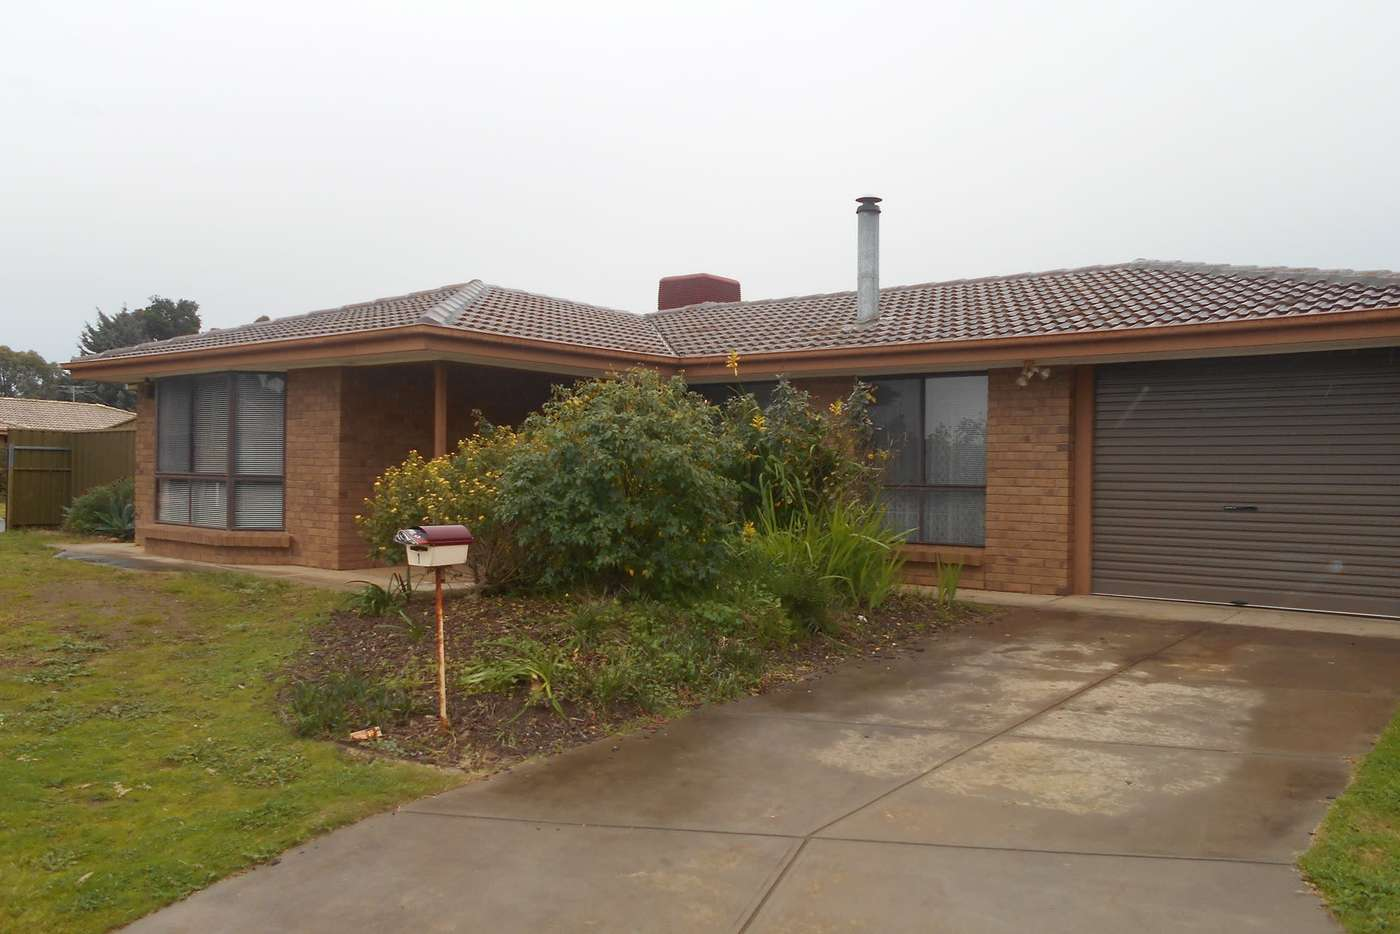 Main view of Homely house listing, 1 Federation Way, Andrews Farm SA 5114